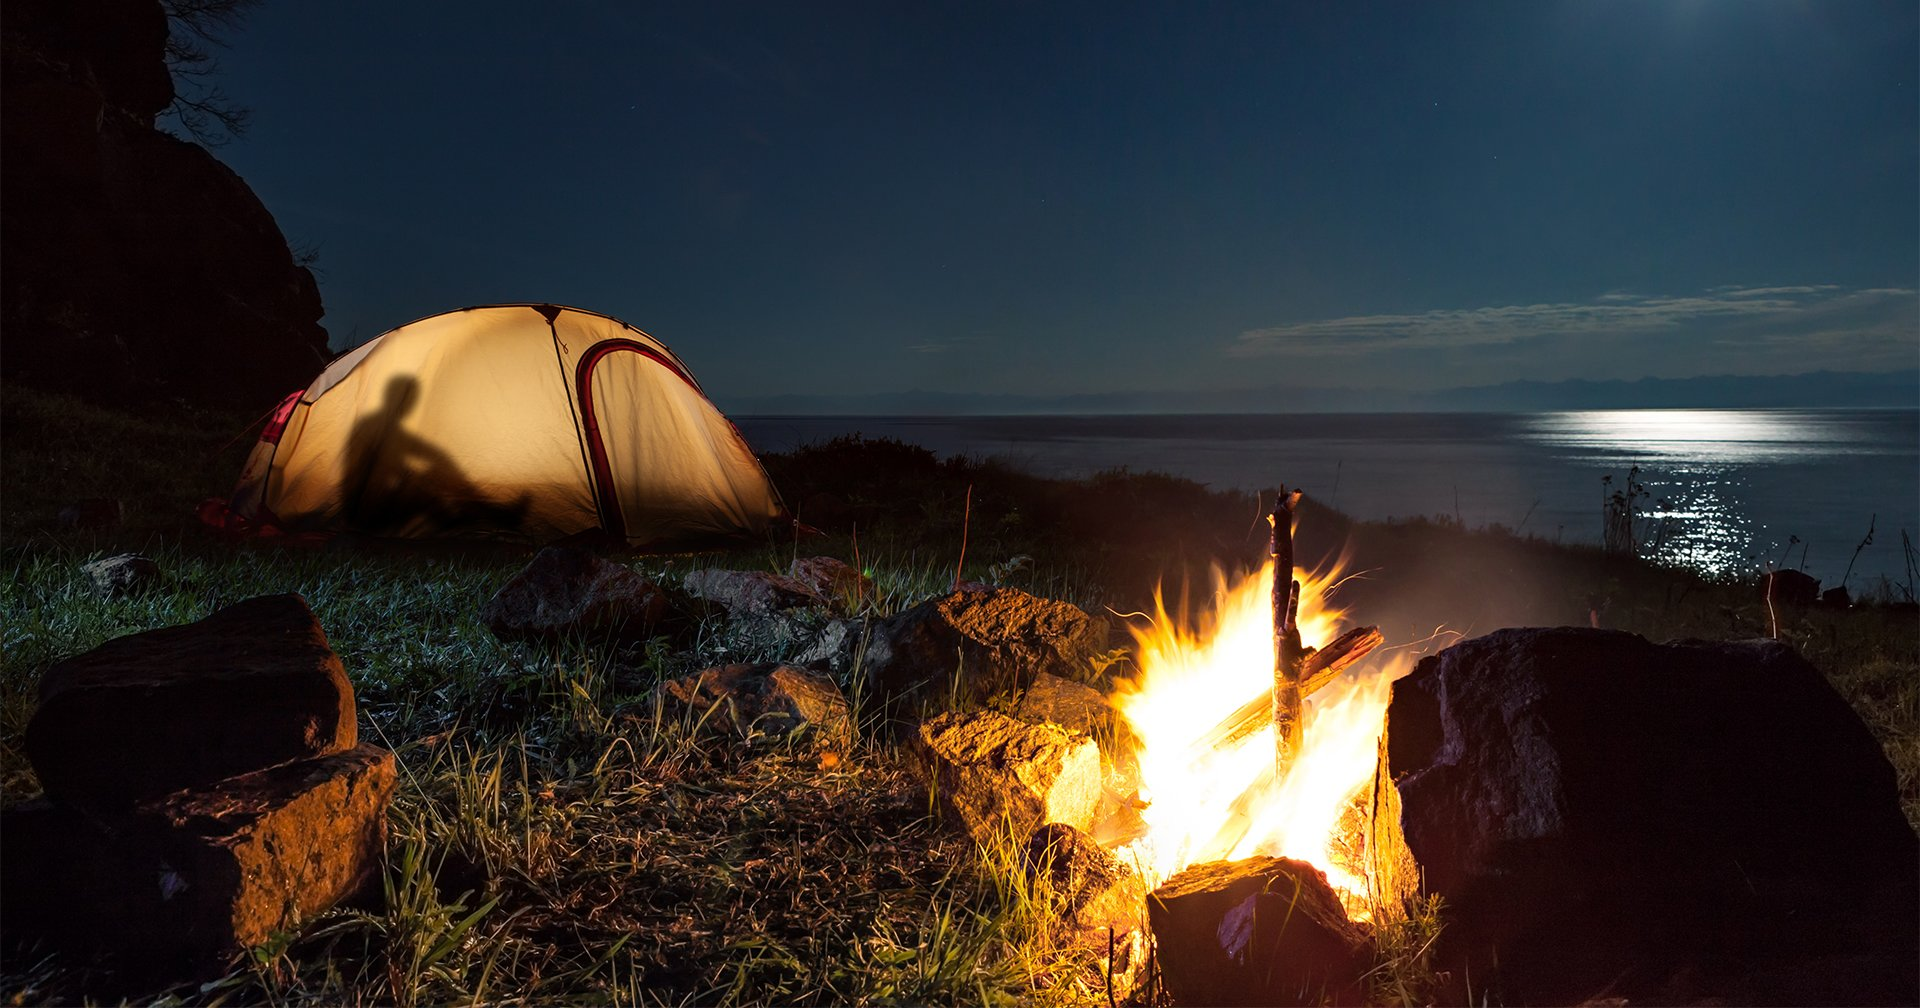 Camping Hd Wallpaper Posted By Christopher Peltier